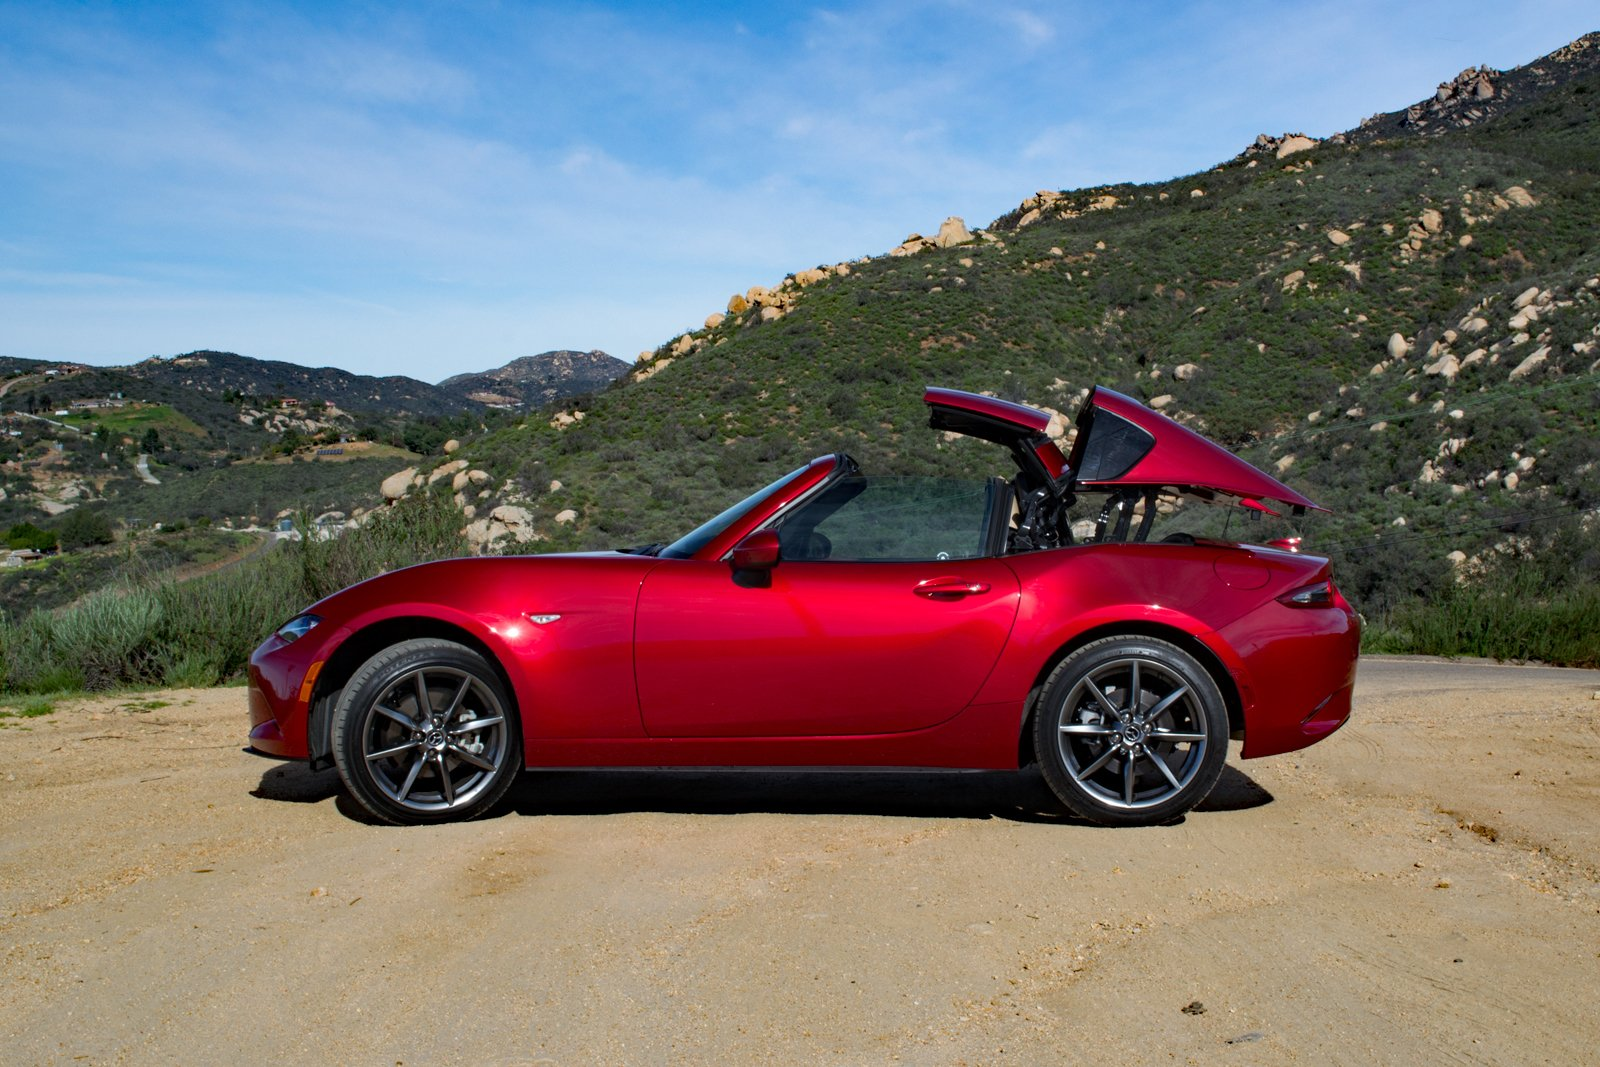 2017 mazda mx-5 miata rf review - autoguide